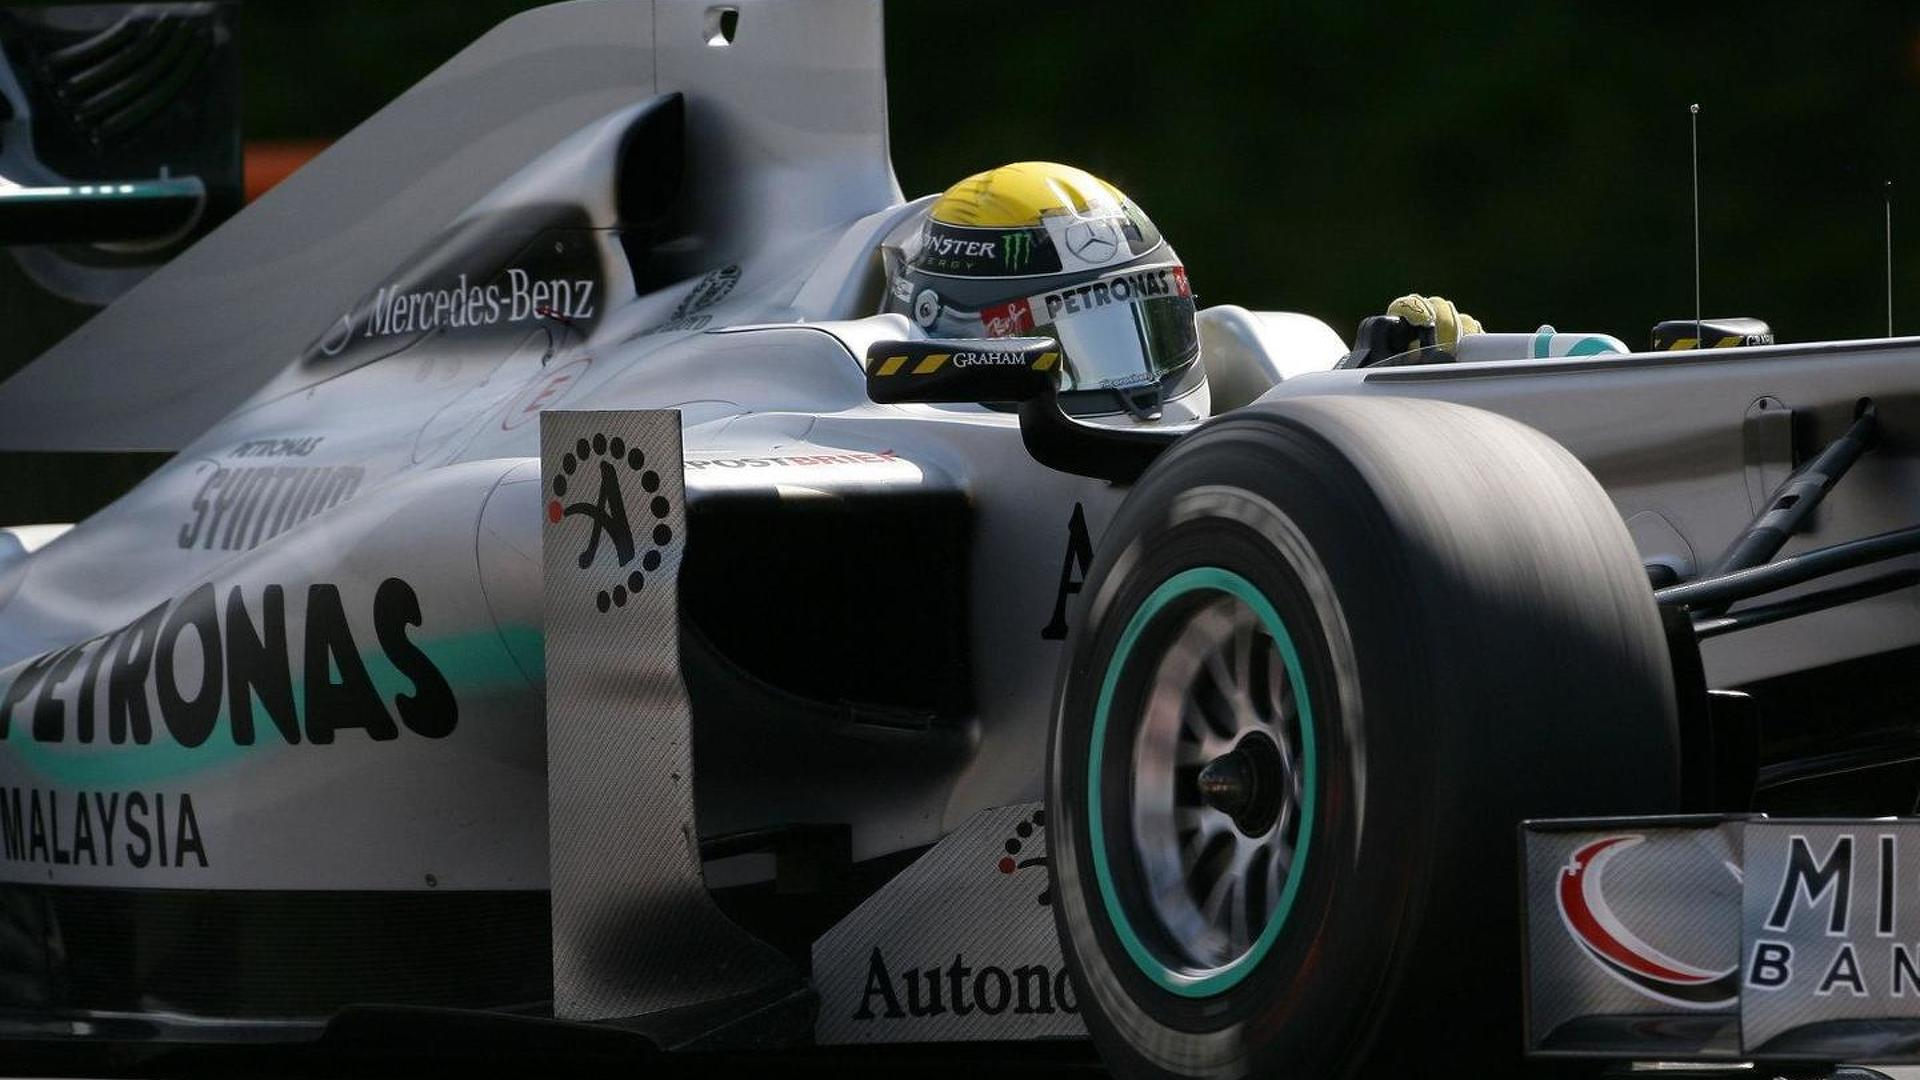 Williams mechanic knocked out by Rosberg tyre